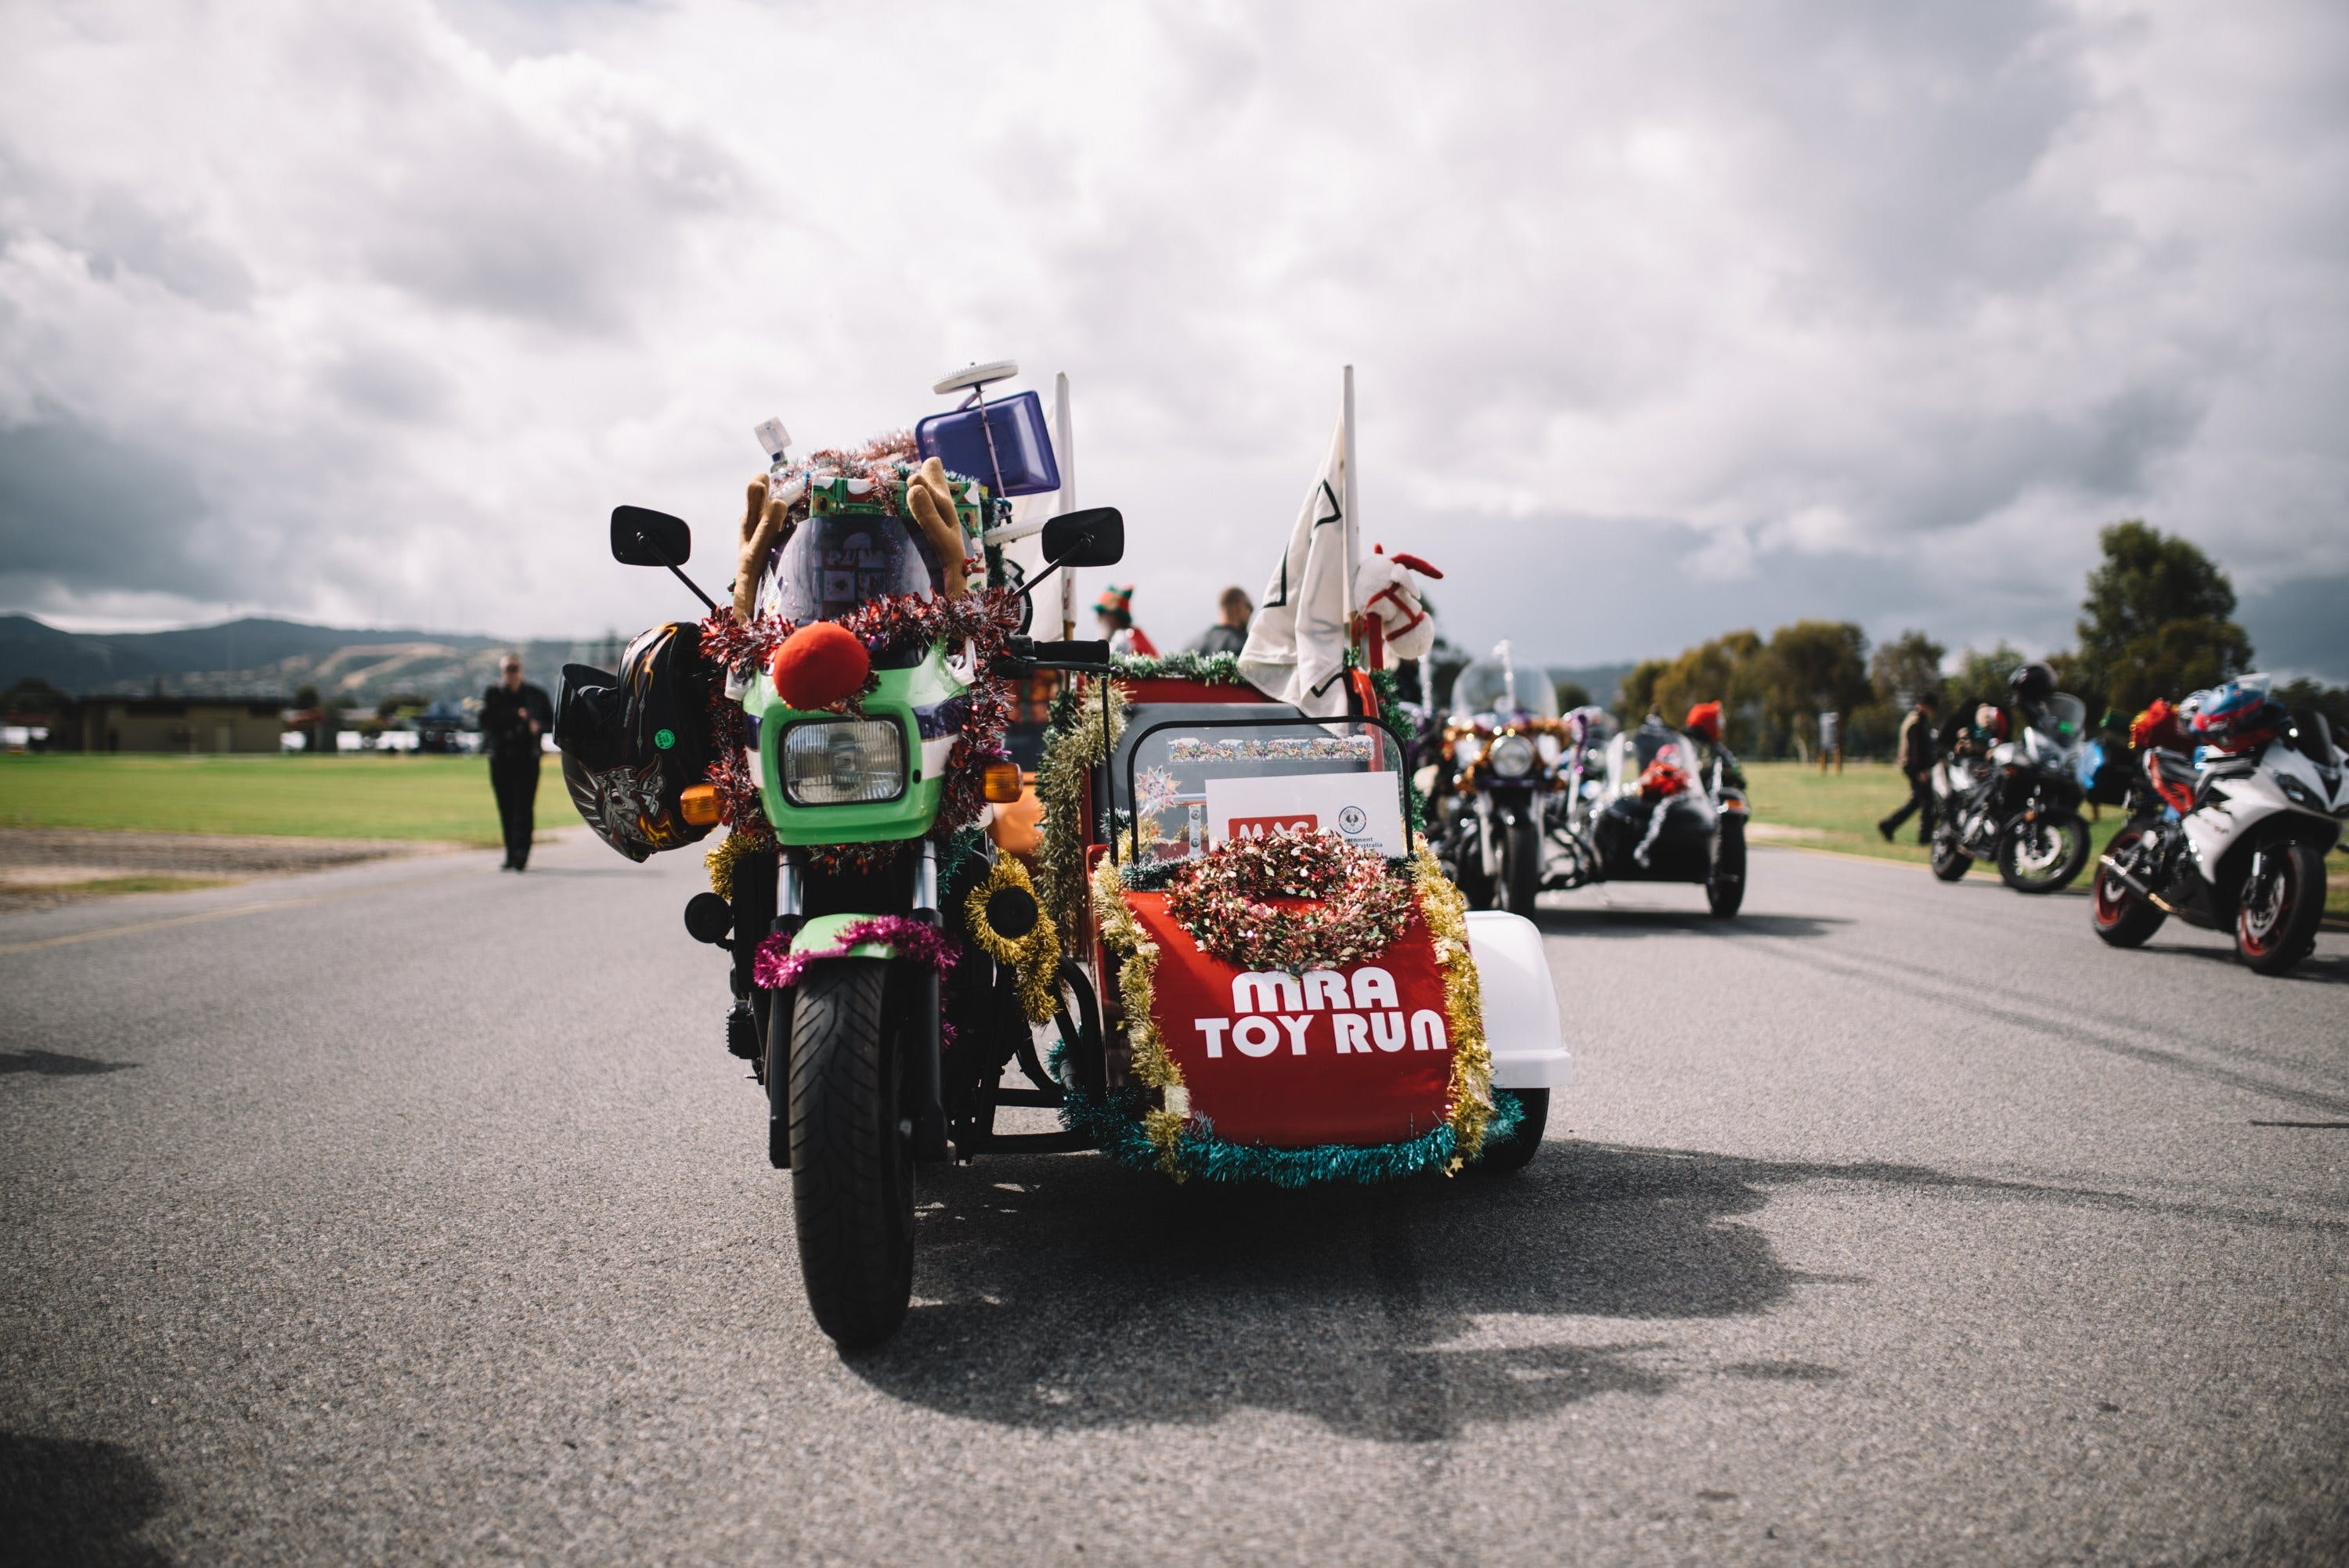 Motorcycle Riders' Association of South Australia Toy Run - New South Wales Tourism